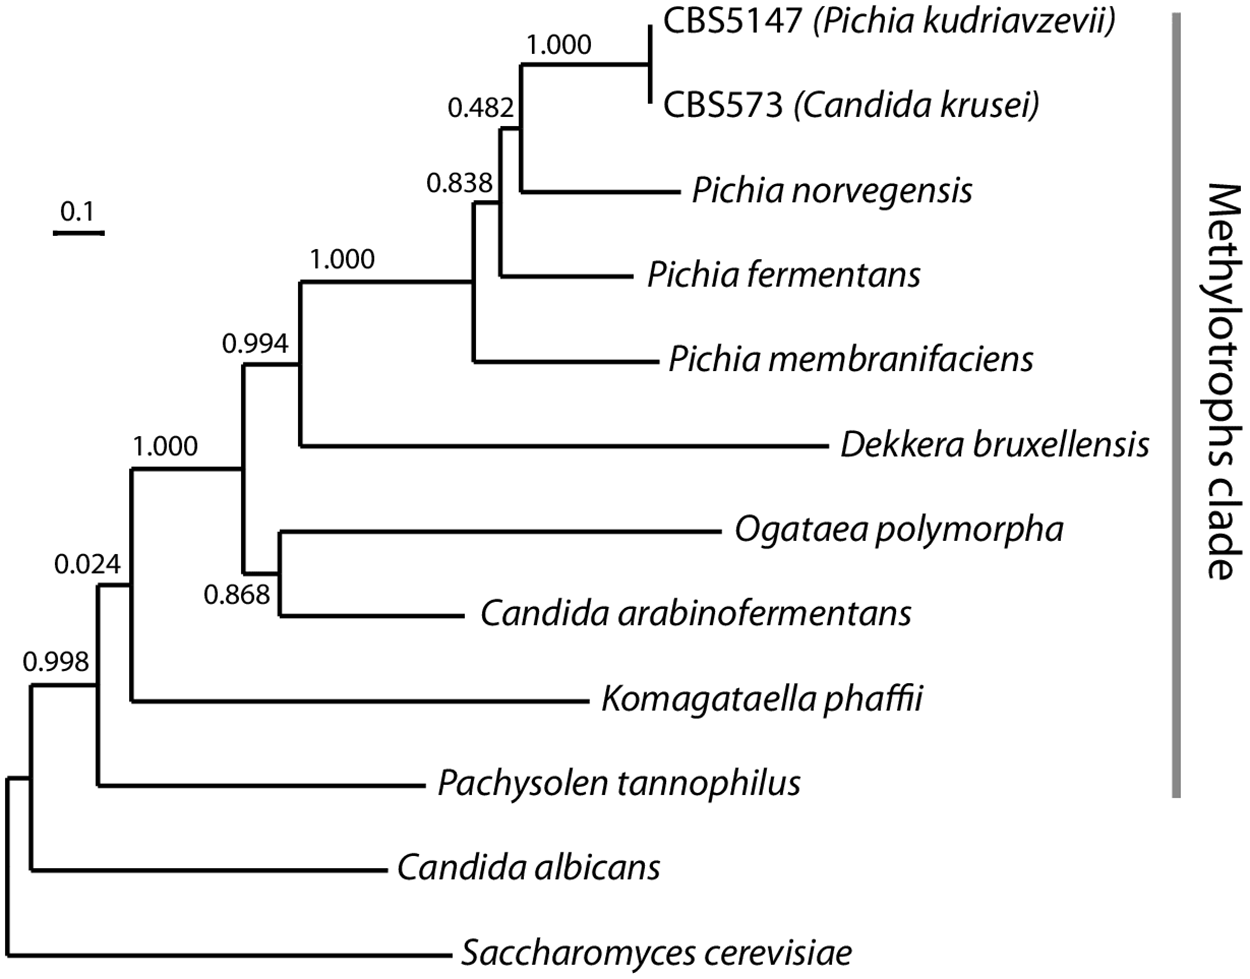 Phylogenetic position of P. kudriavzevii.